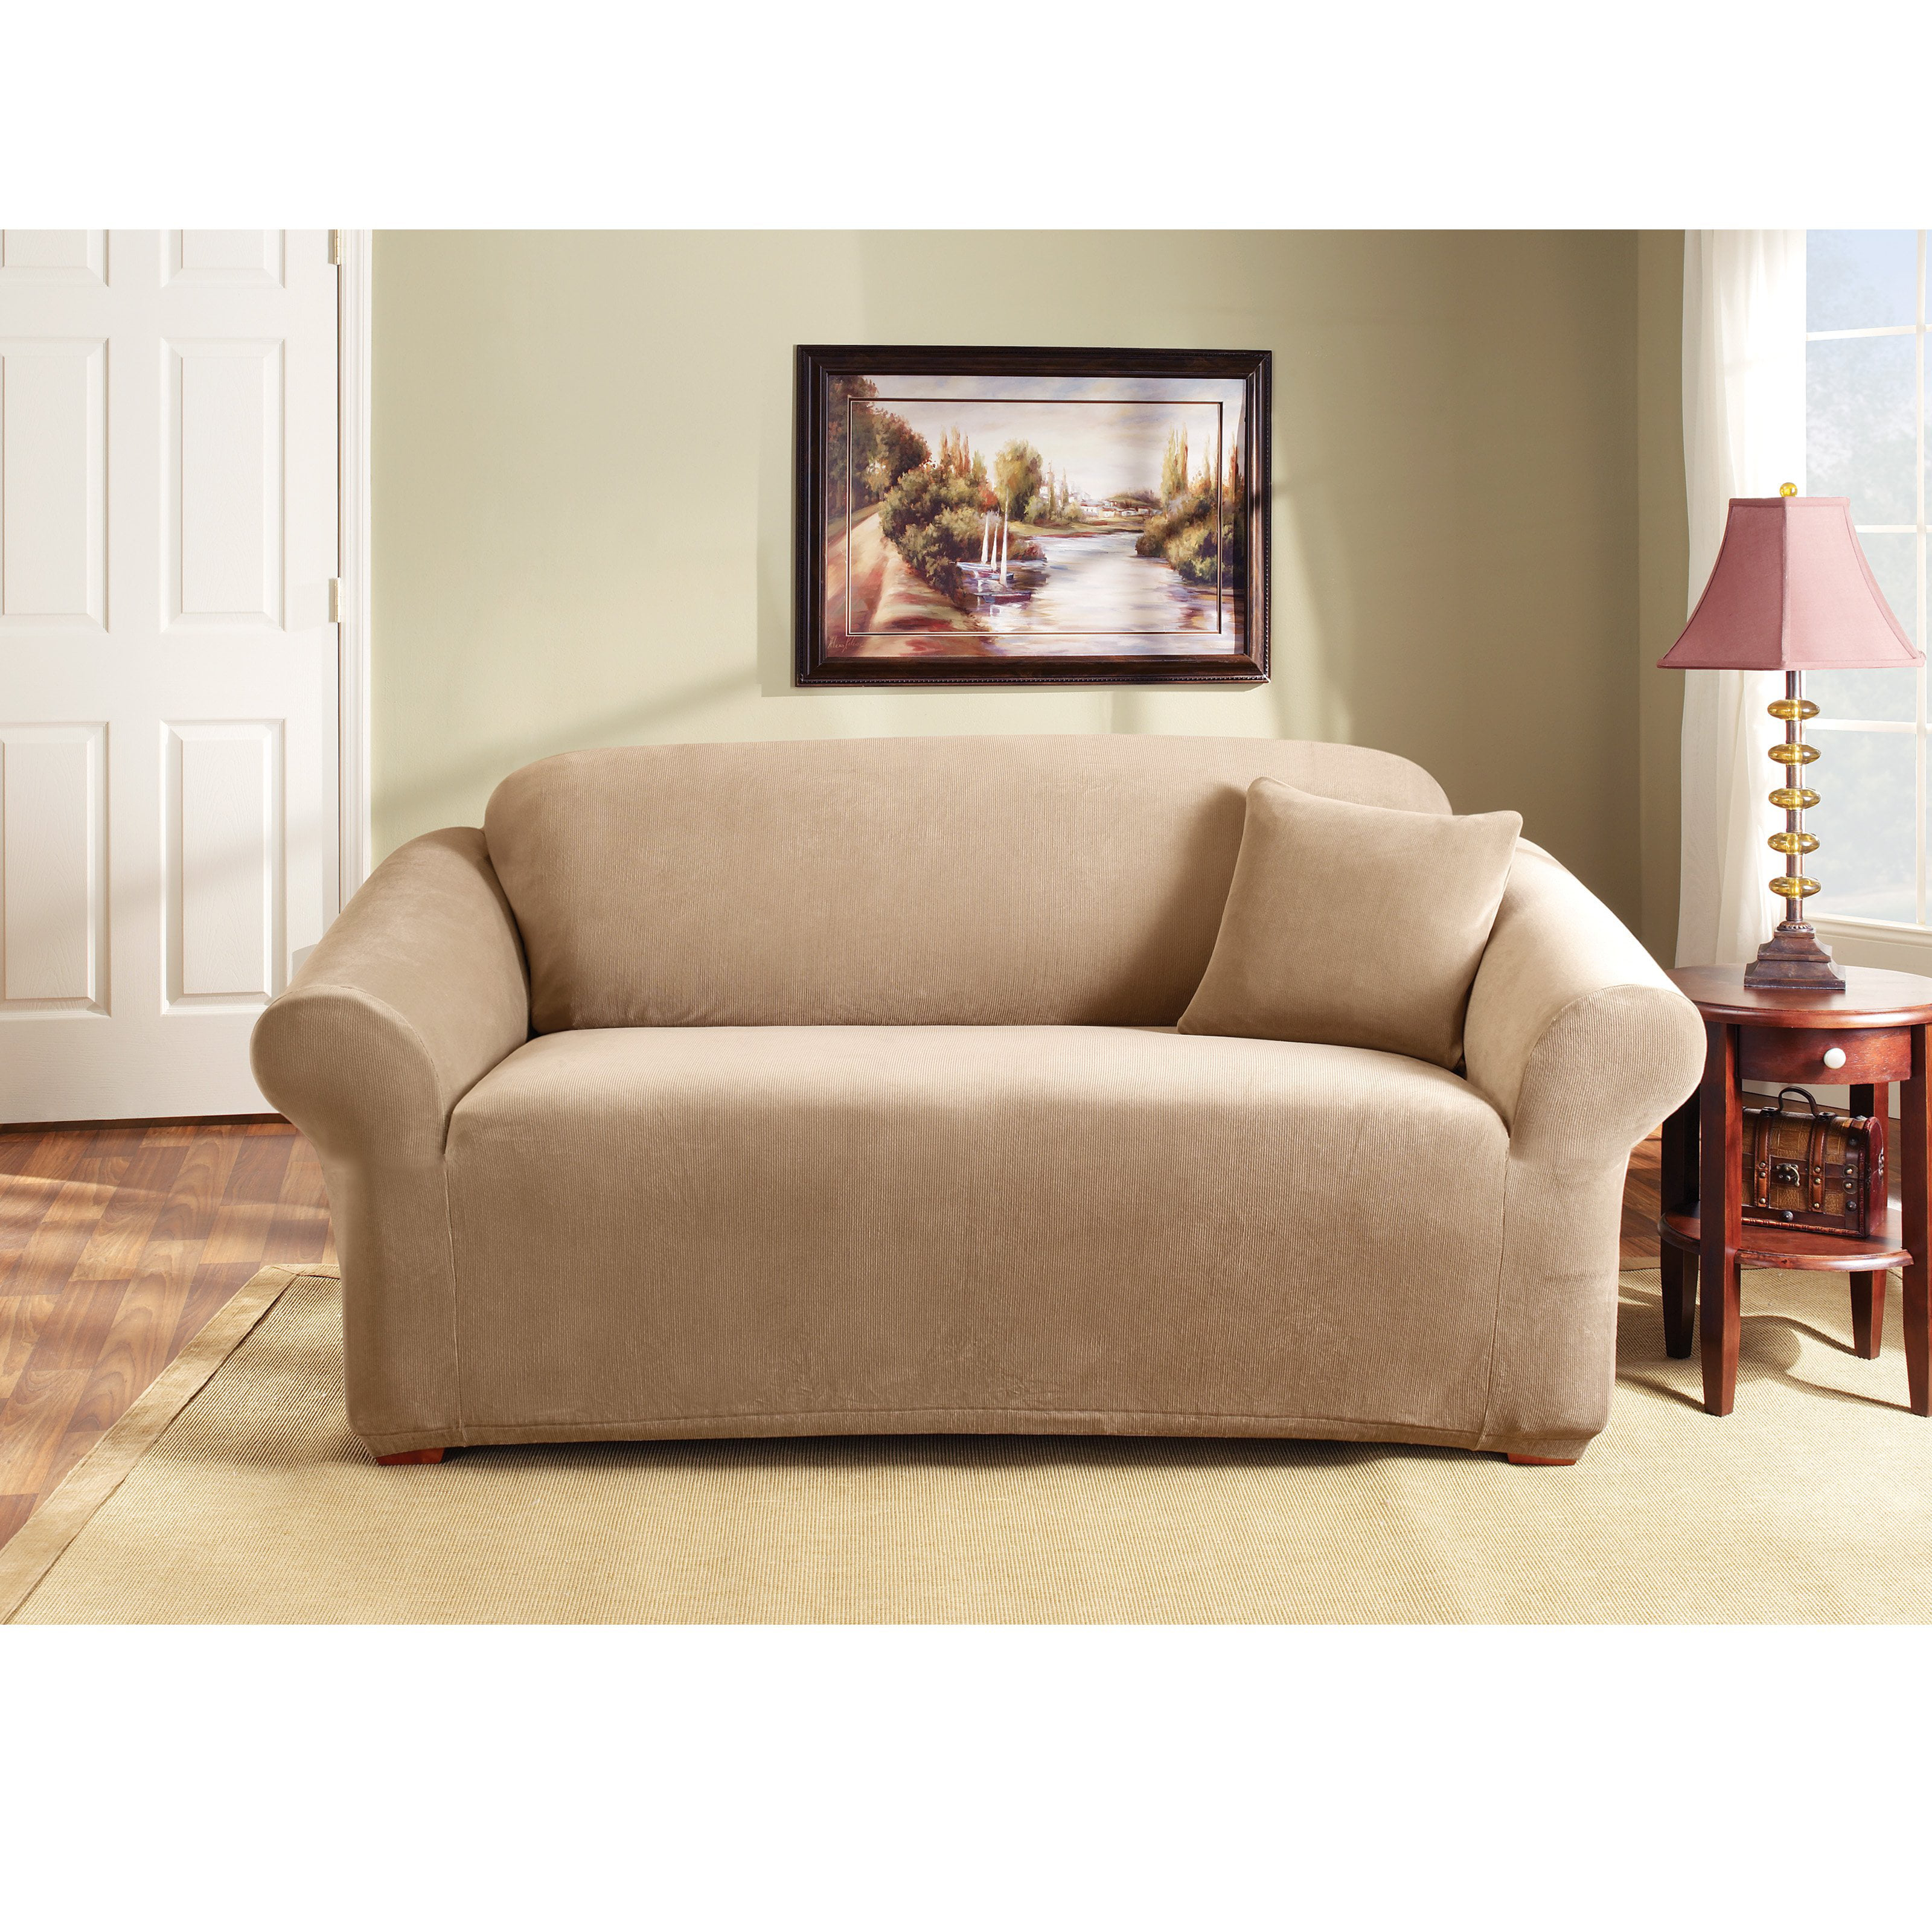 room sofa board and havertys slipcover sleeper best furniture top sale platform leather line reviews twin pop pottery full american scale oxford macys sectional zeth diy amazon loveseat small barn size with for ideas queen of england reclining the chaise up